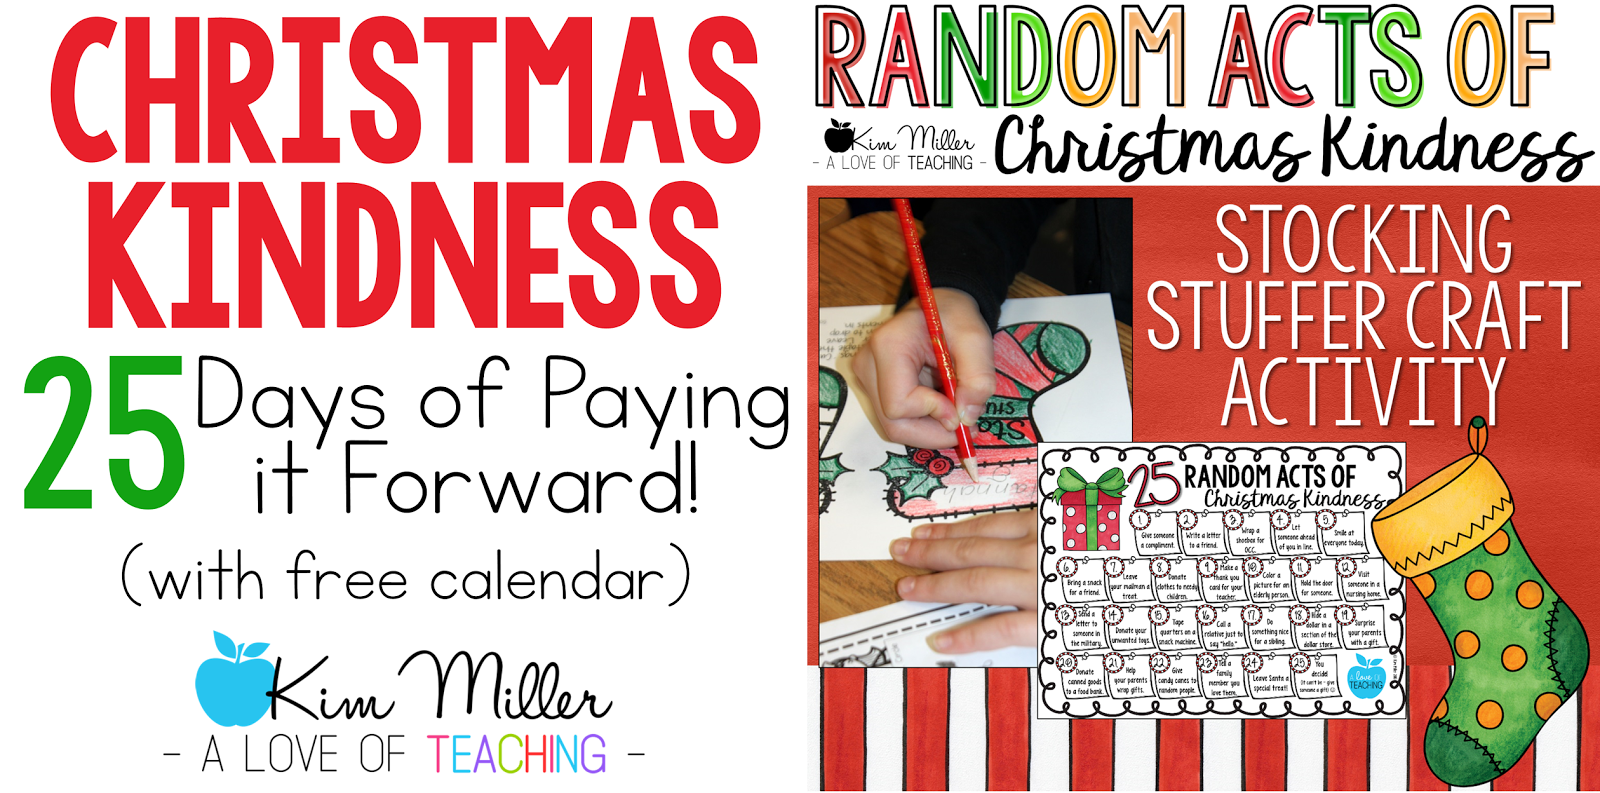 Christmas Kindness: 25 Days of Paying it Forward